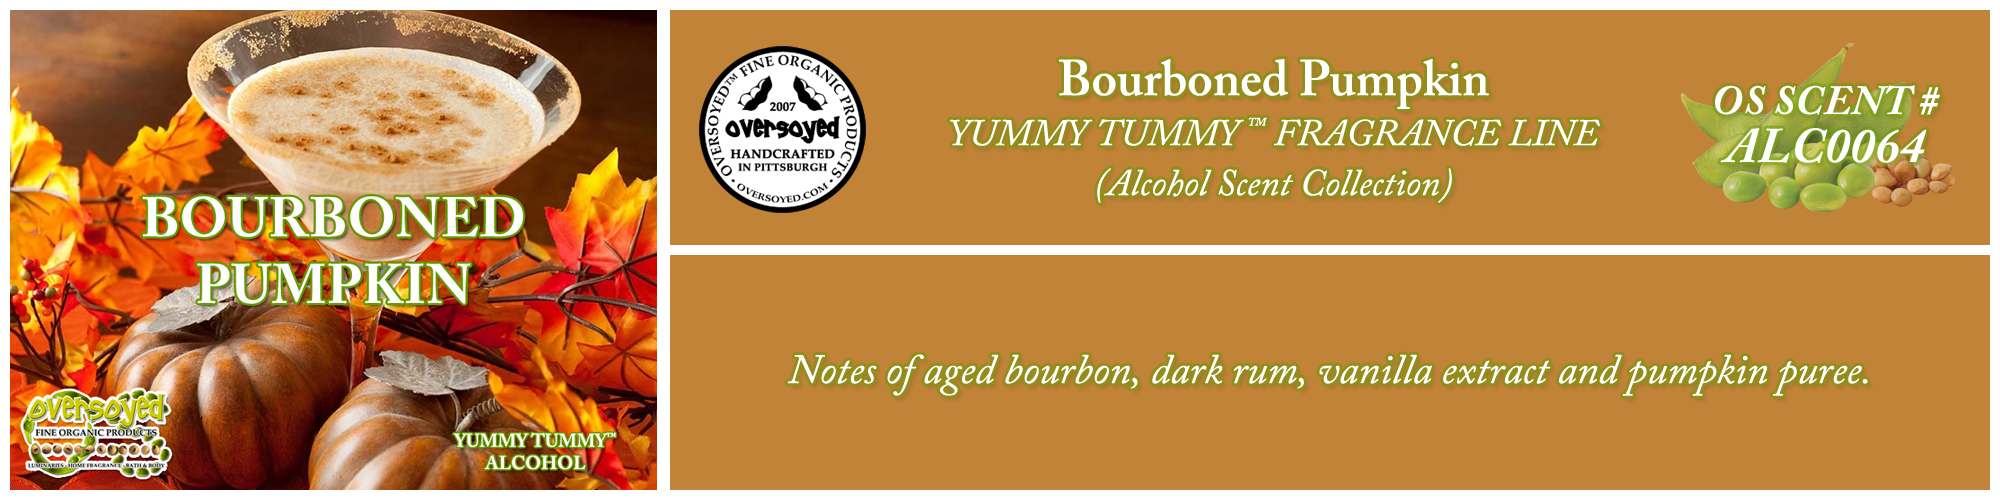 Bourboned Pumpkin Handcrafted Products Collection